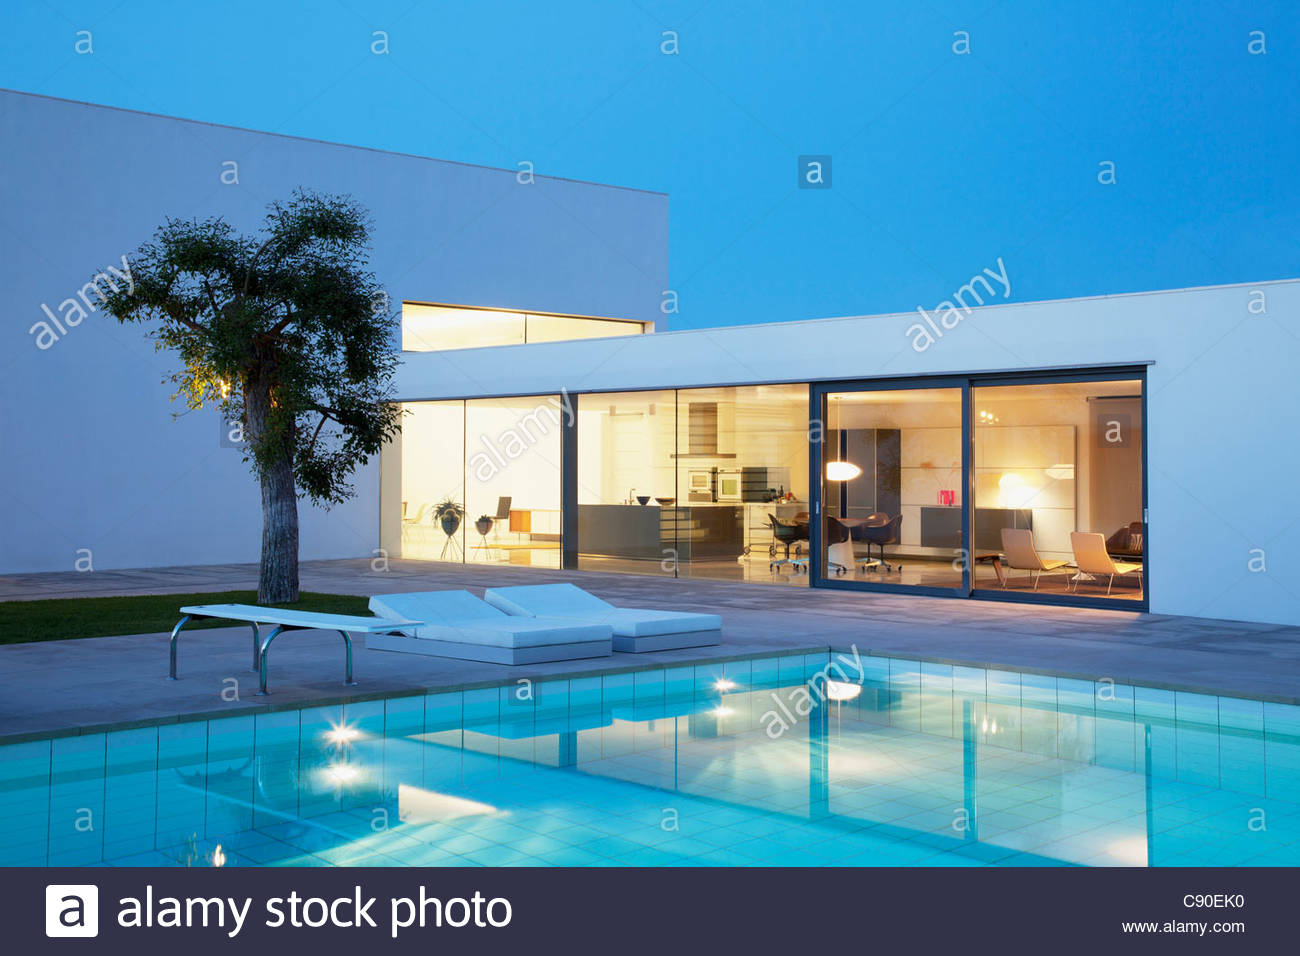 Pool outside modern house at night stock photo royalty for Modern house at night